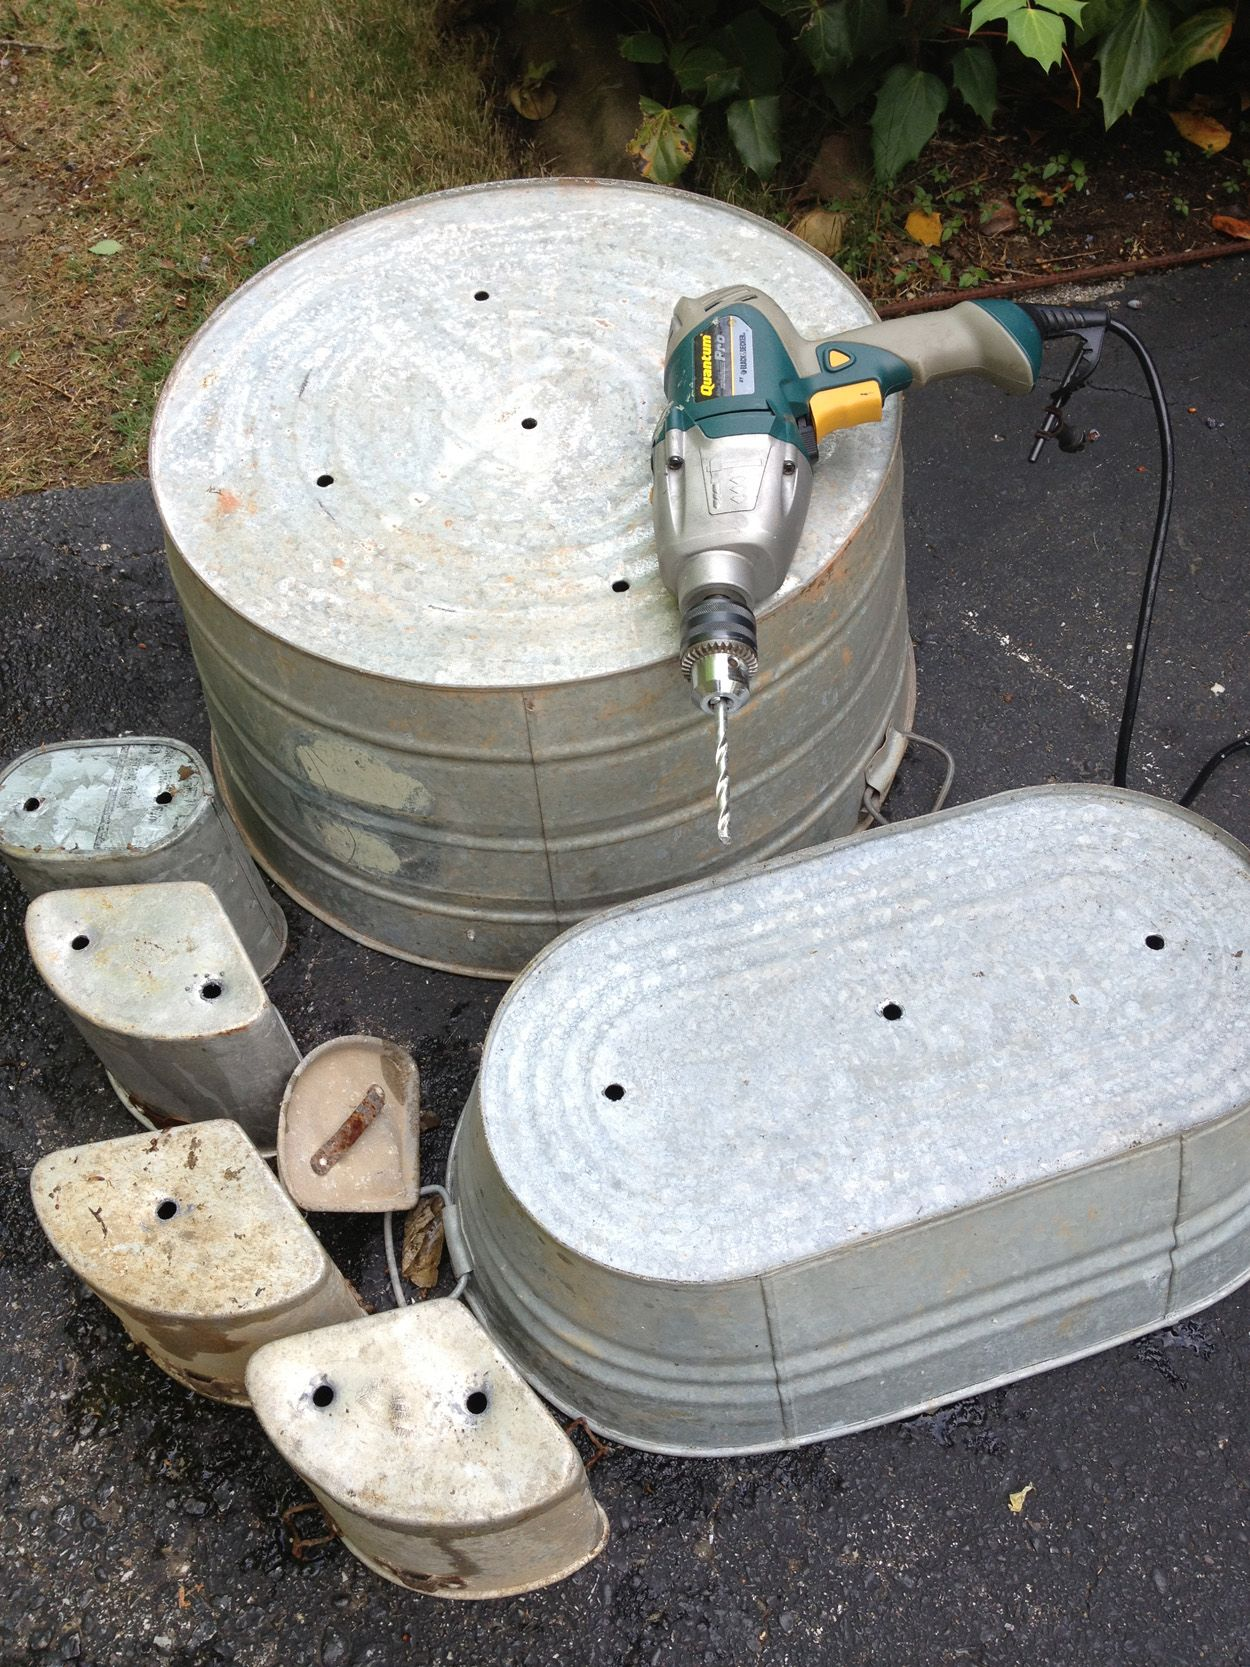 Drill Holes In Galvanized Tubs To Turn Them Into